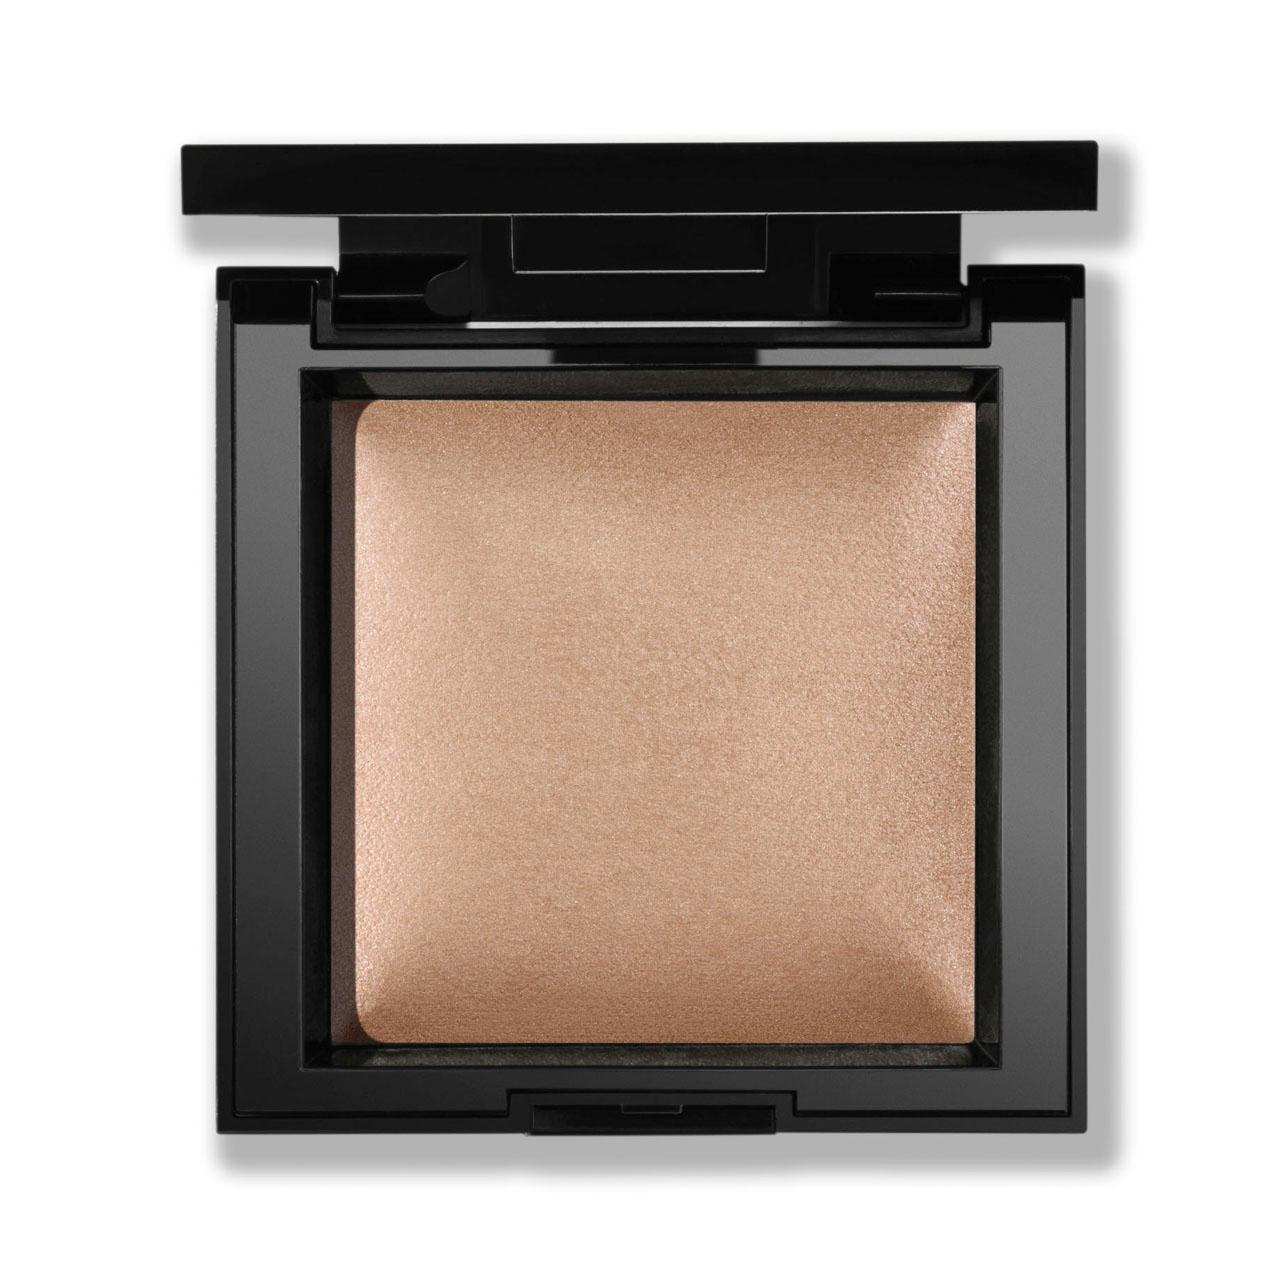 An image of bareMinerals Invisible Bronze Fair to Light